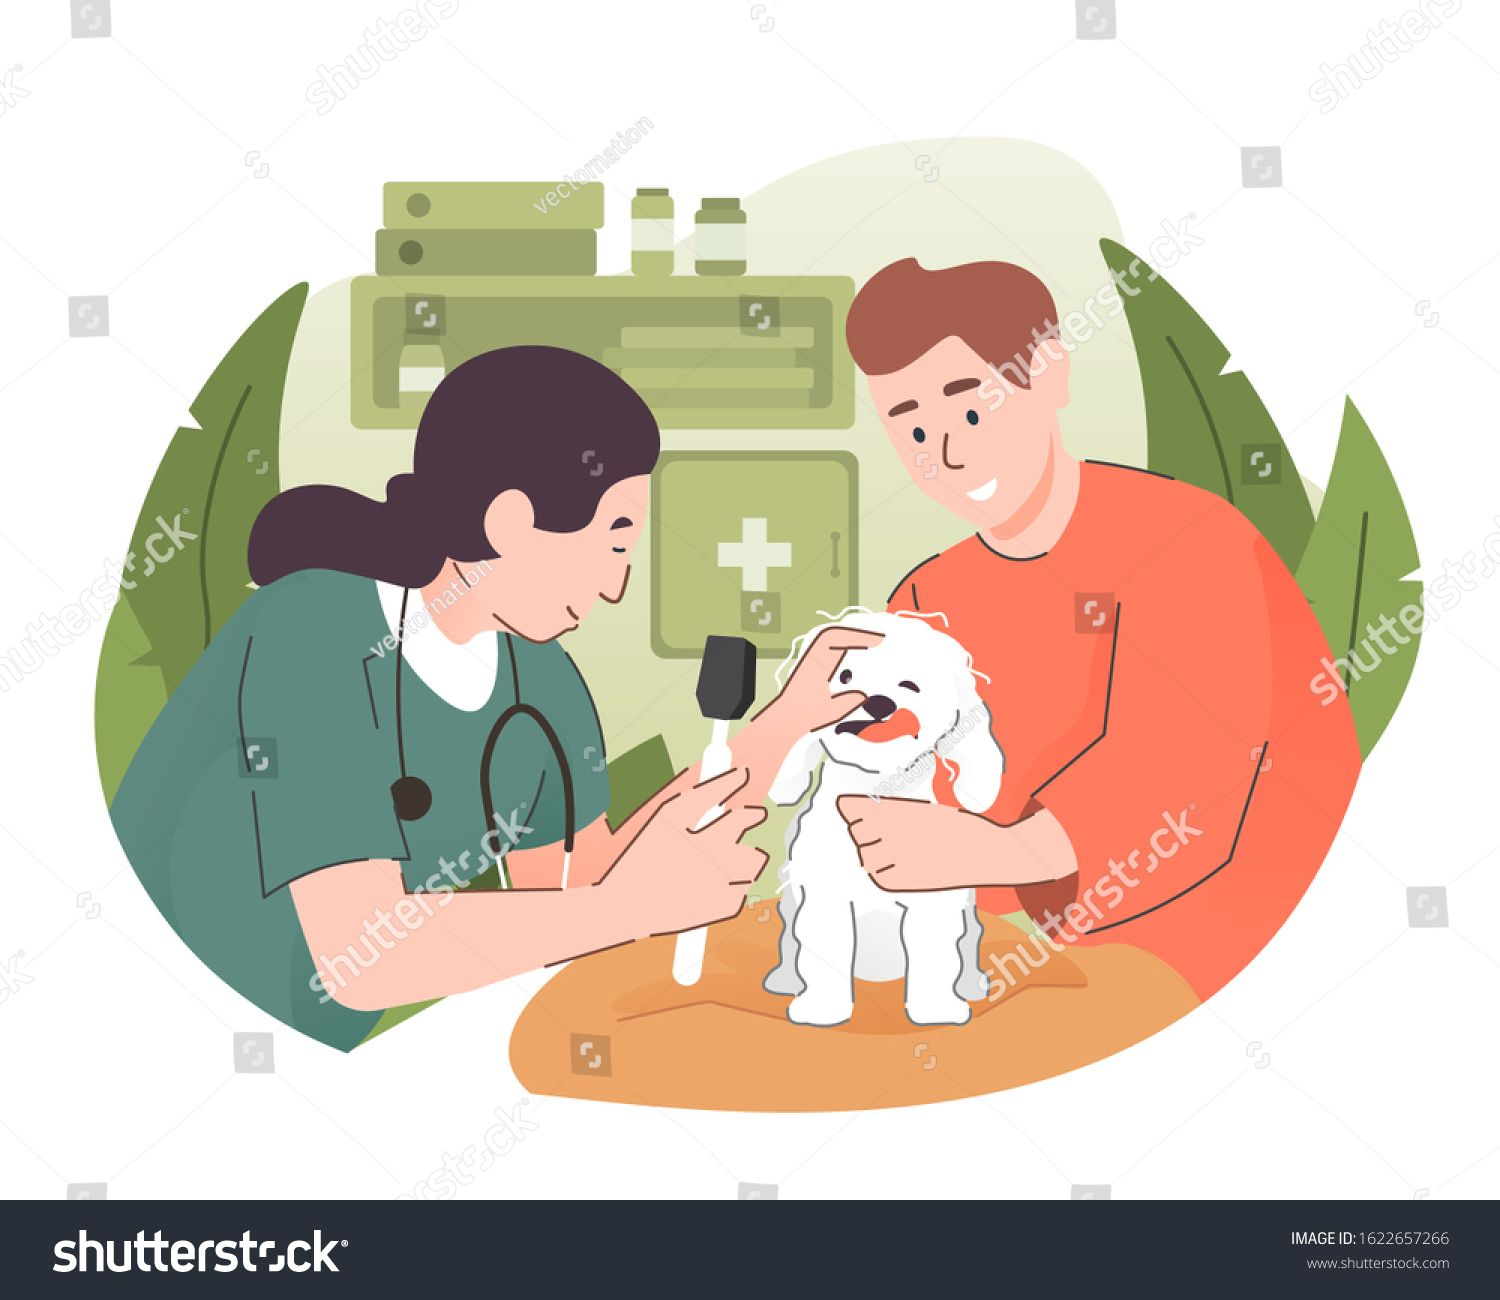 Veterinarian Doctor Examining A Dog At Vet Clinic Pet Health Care And Medical Concept Ad Sponsored Dog Vet Examin Pet Health Care Vet Clinics Pet Health